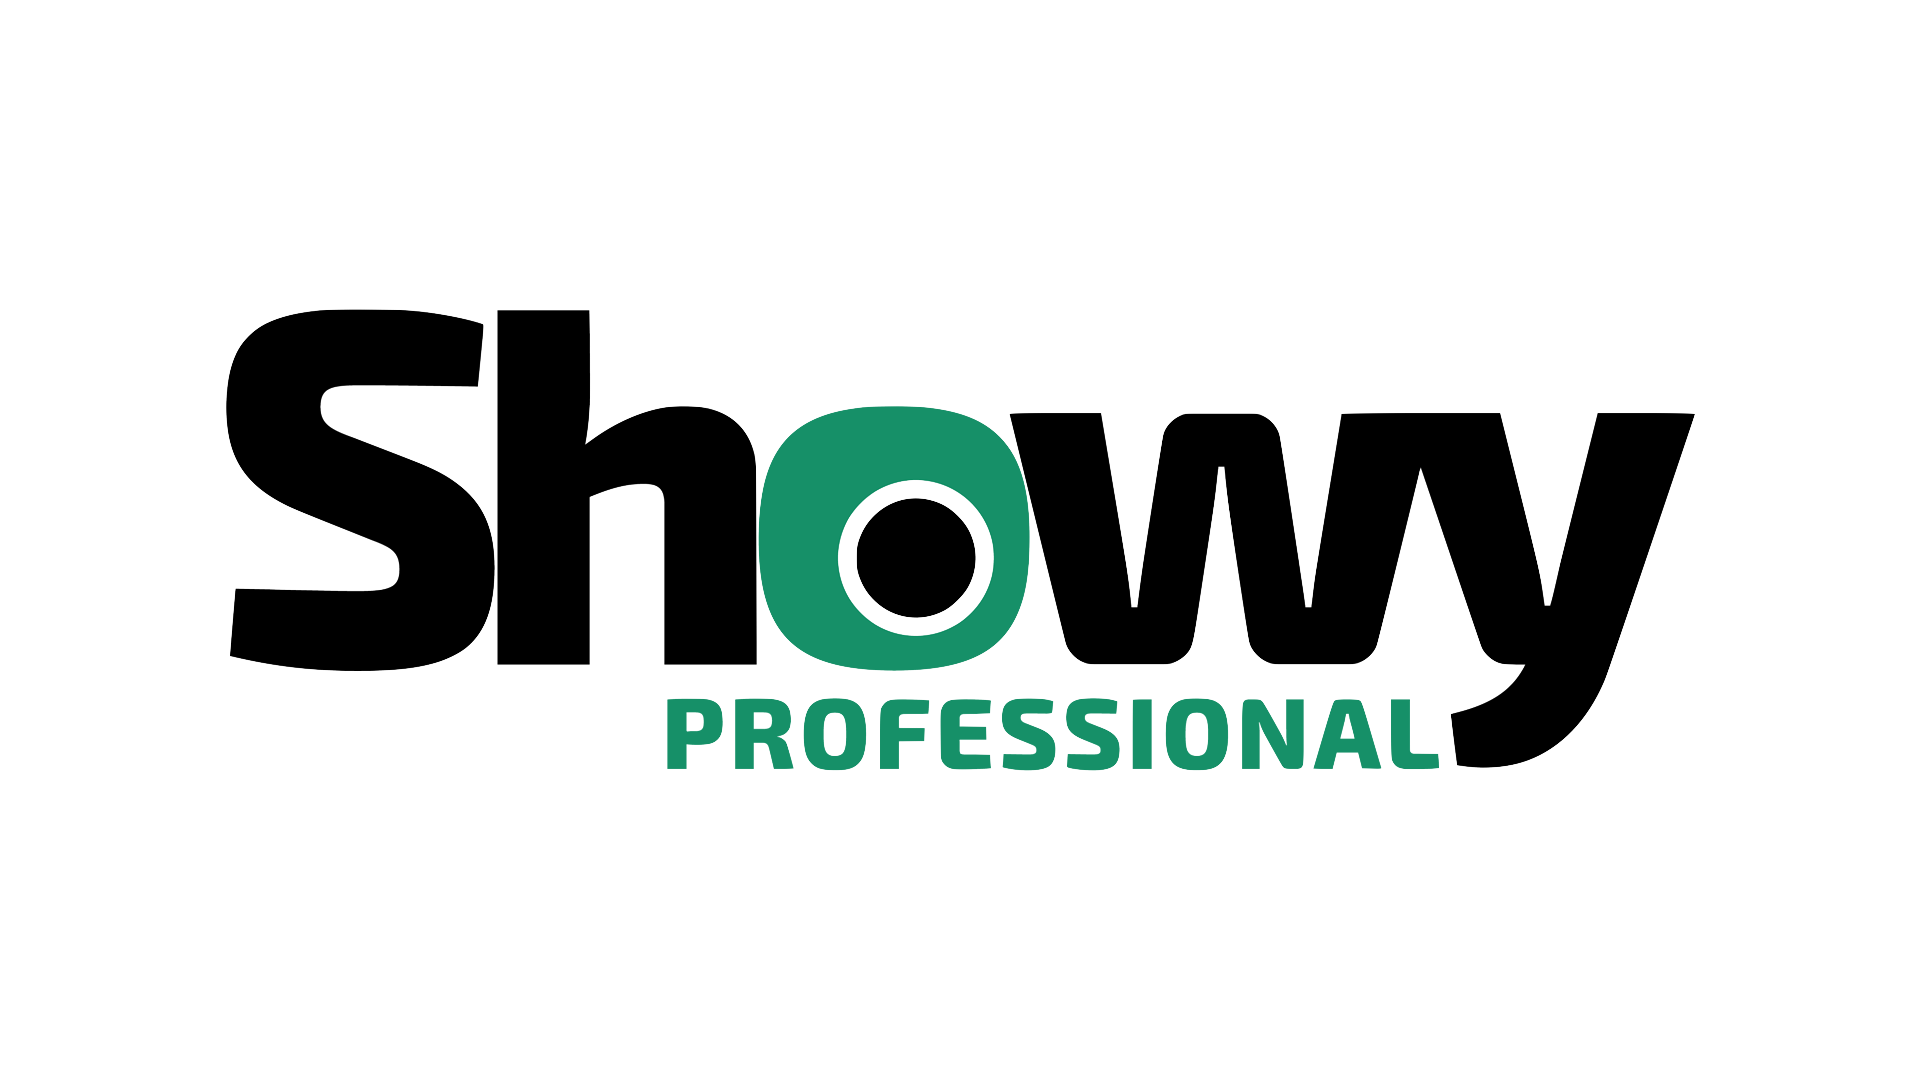 Showy Professional